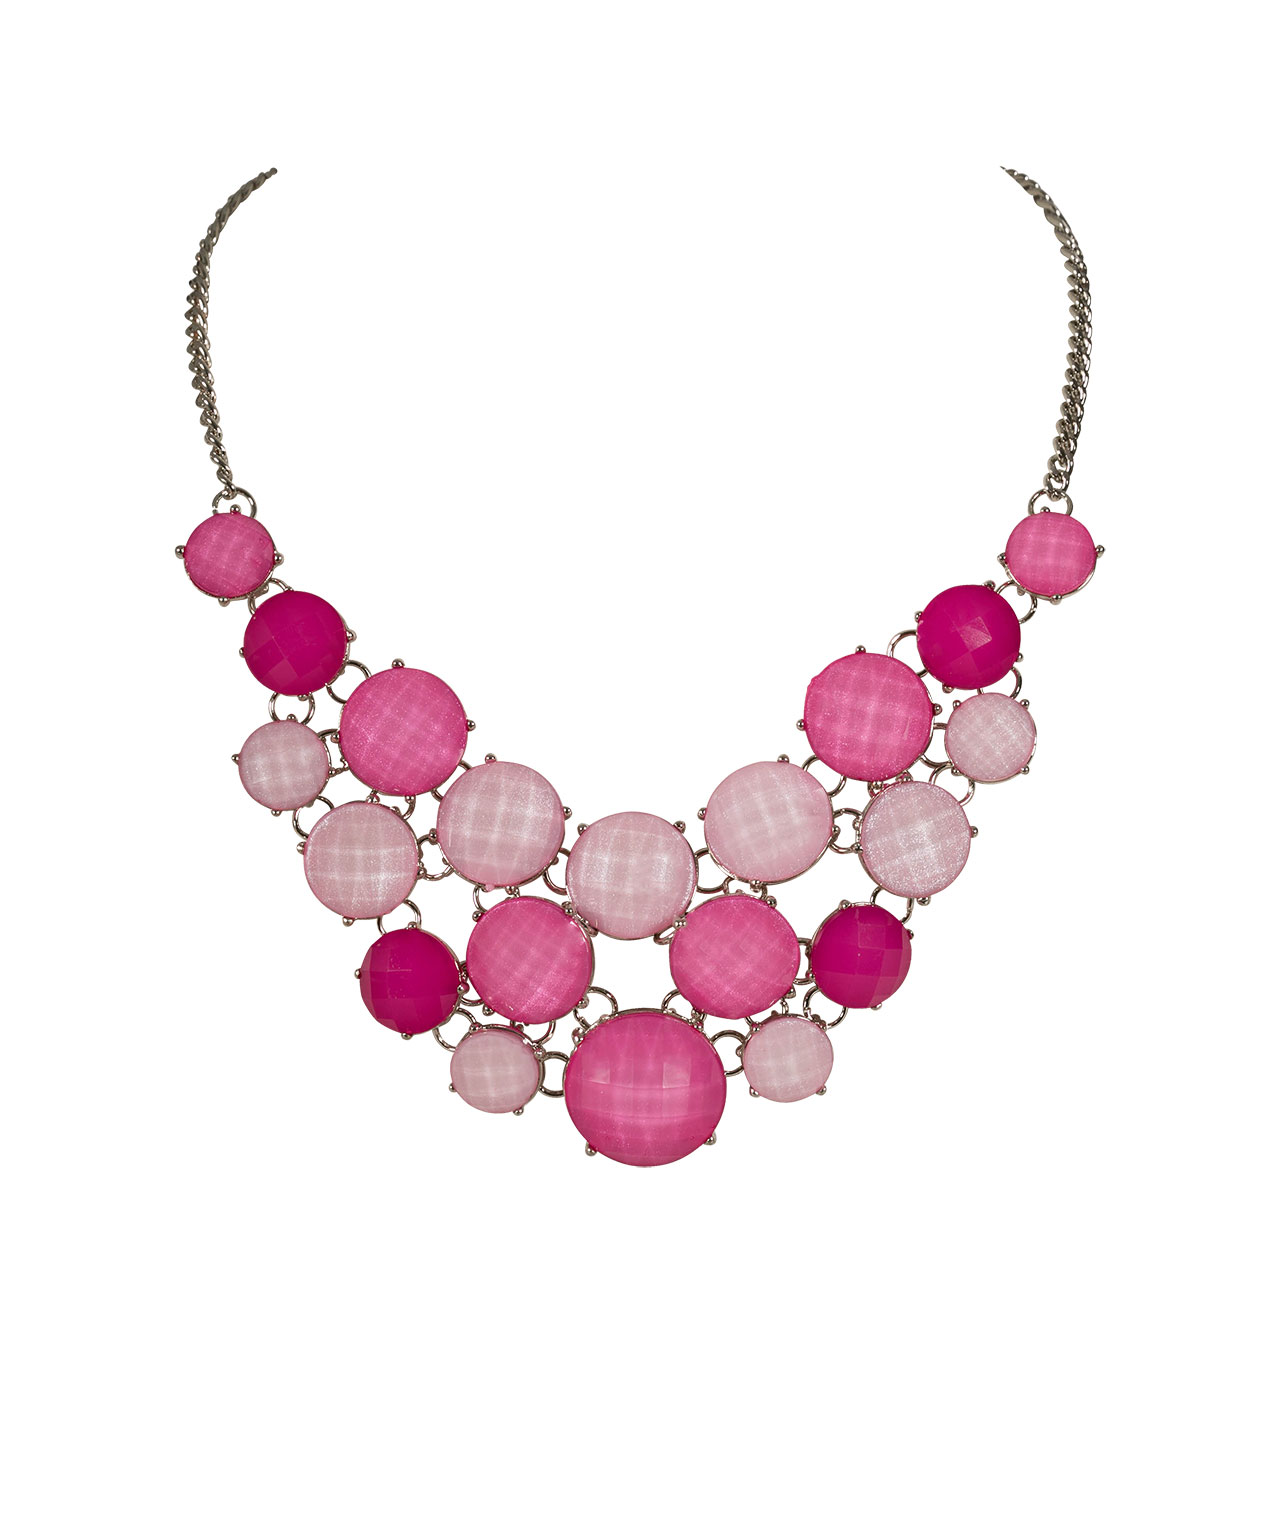 store getty the color of products shades p pink necklace story